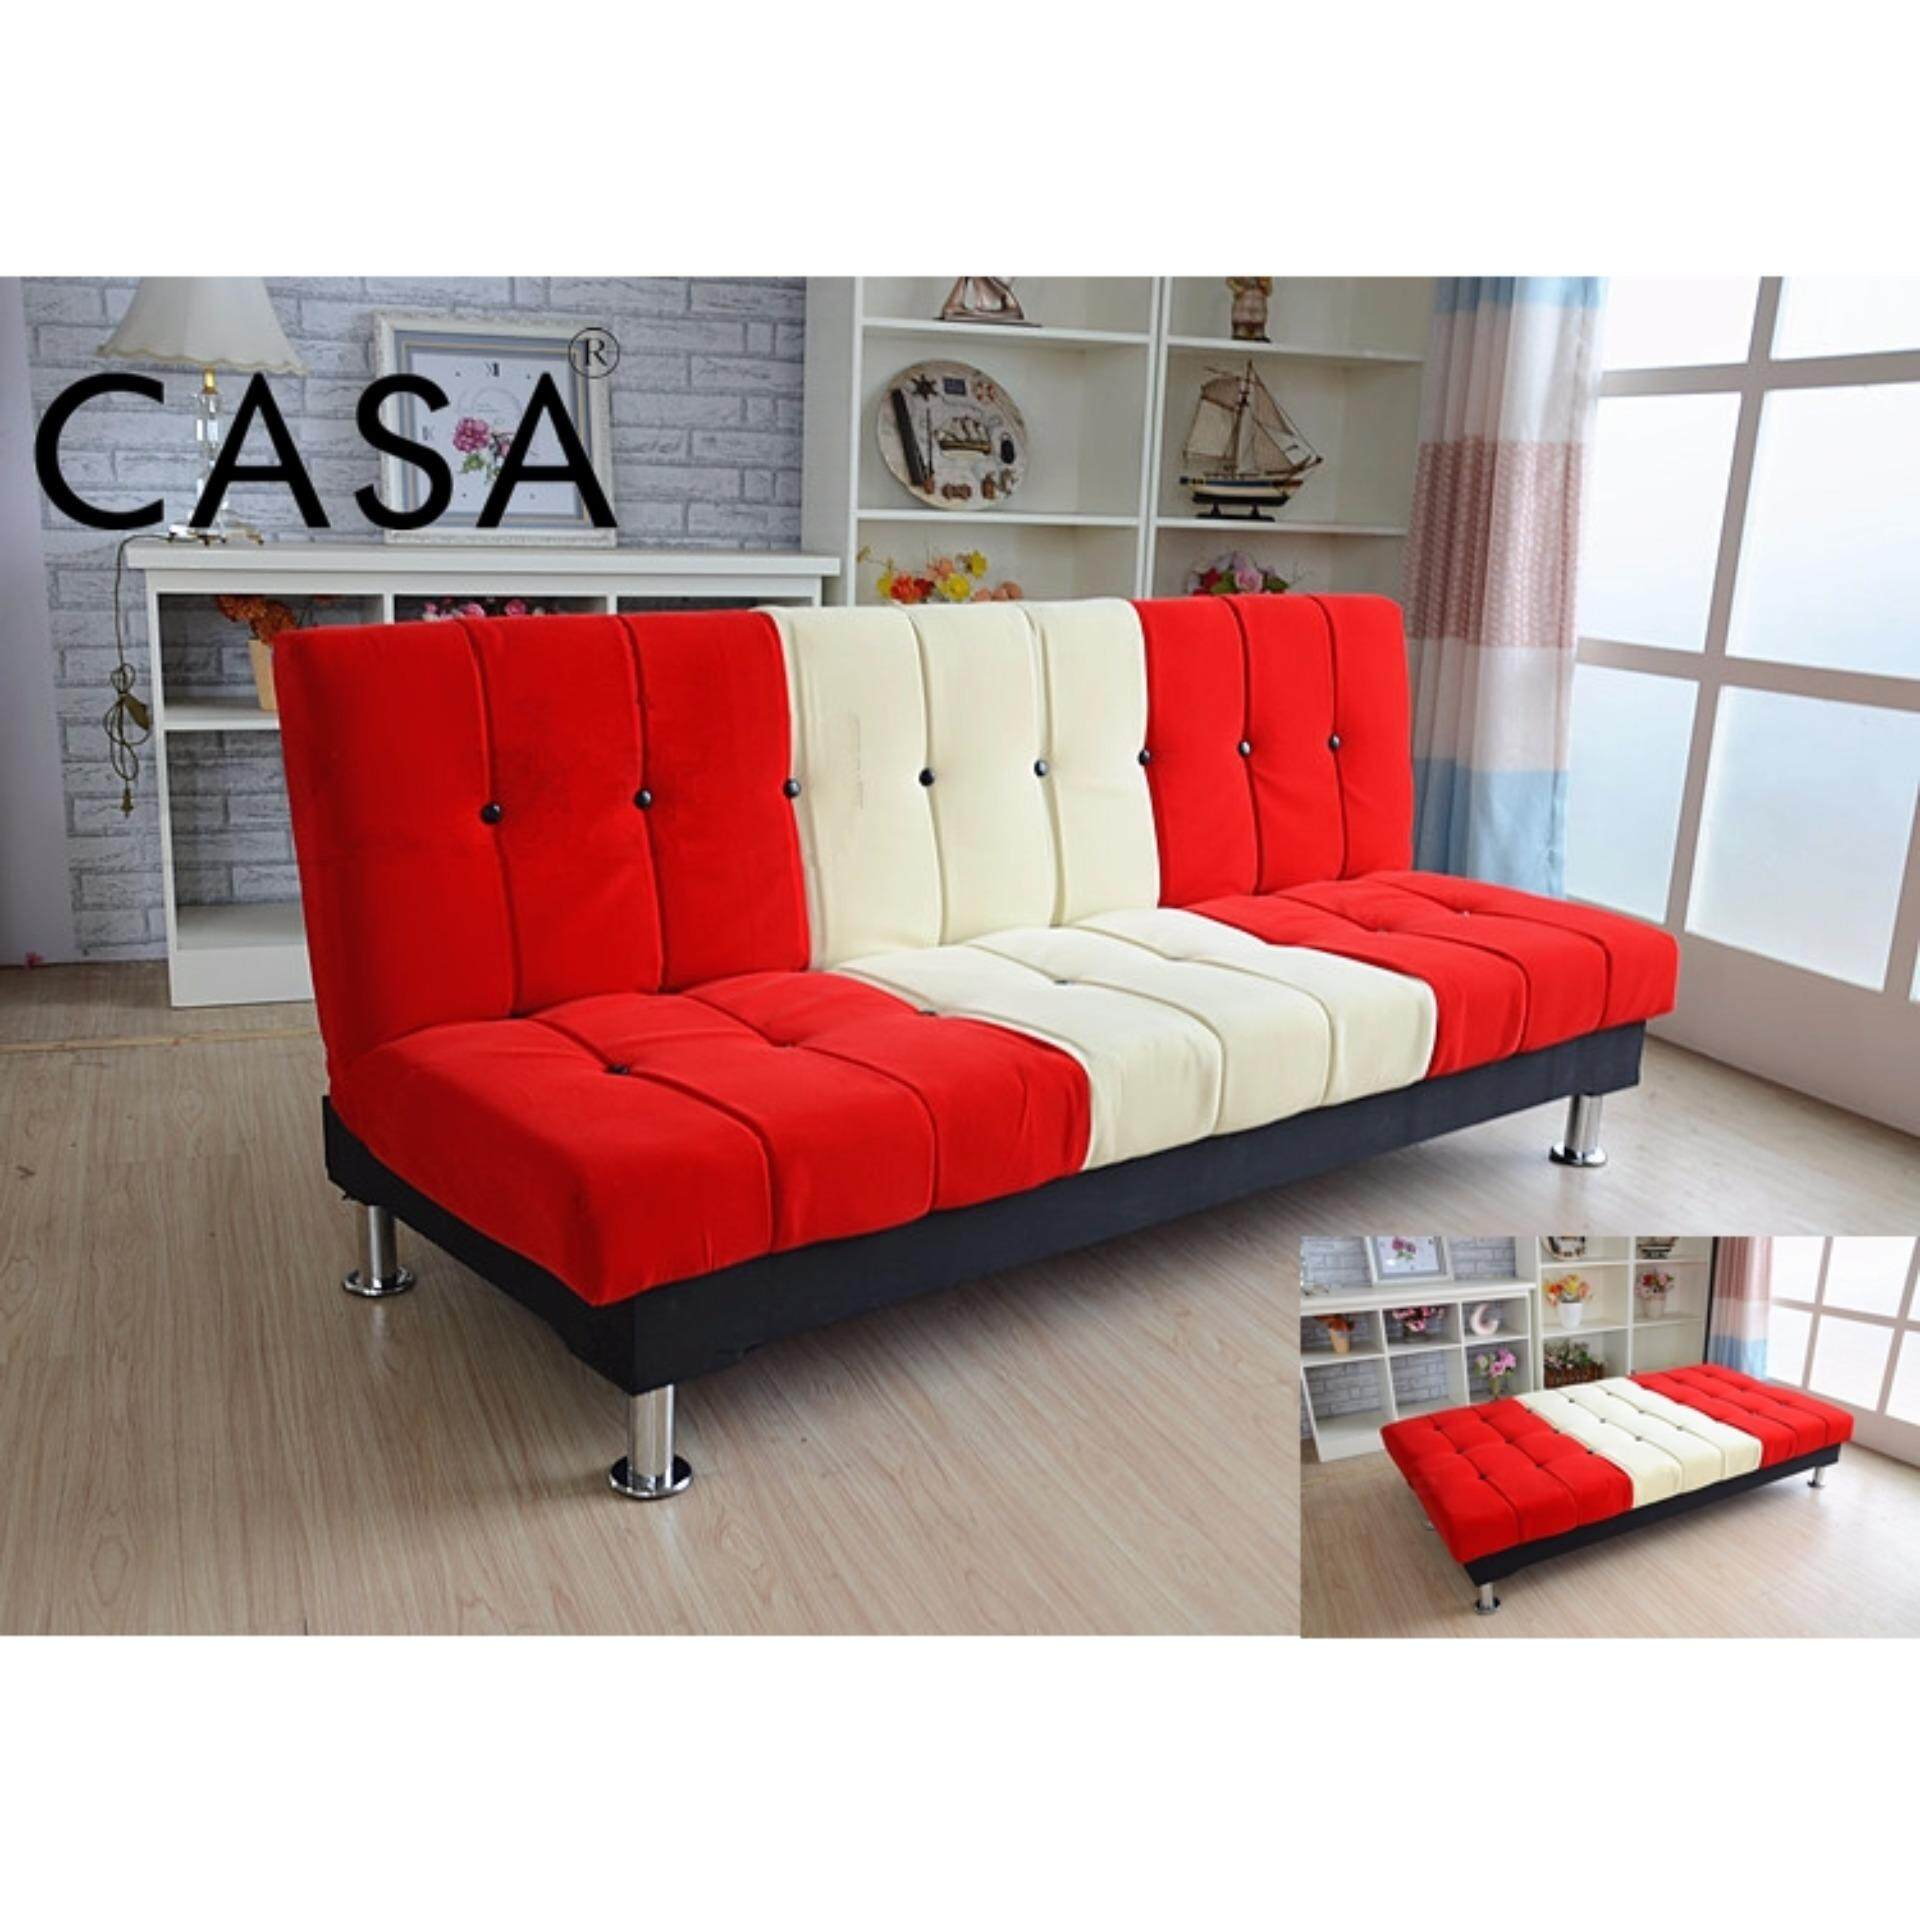 atherton home soho convertible futon sofa bed and lounger how to fix leather color